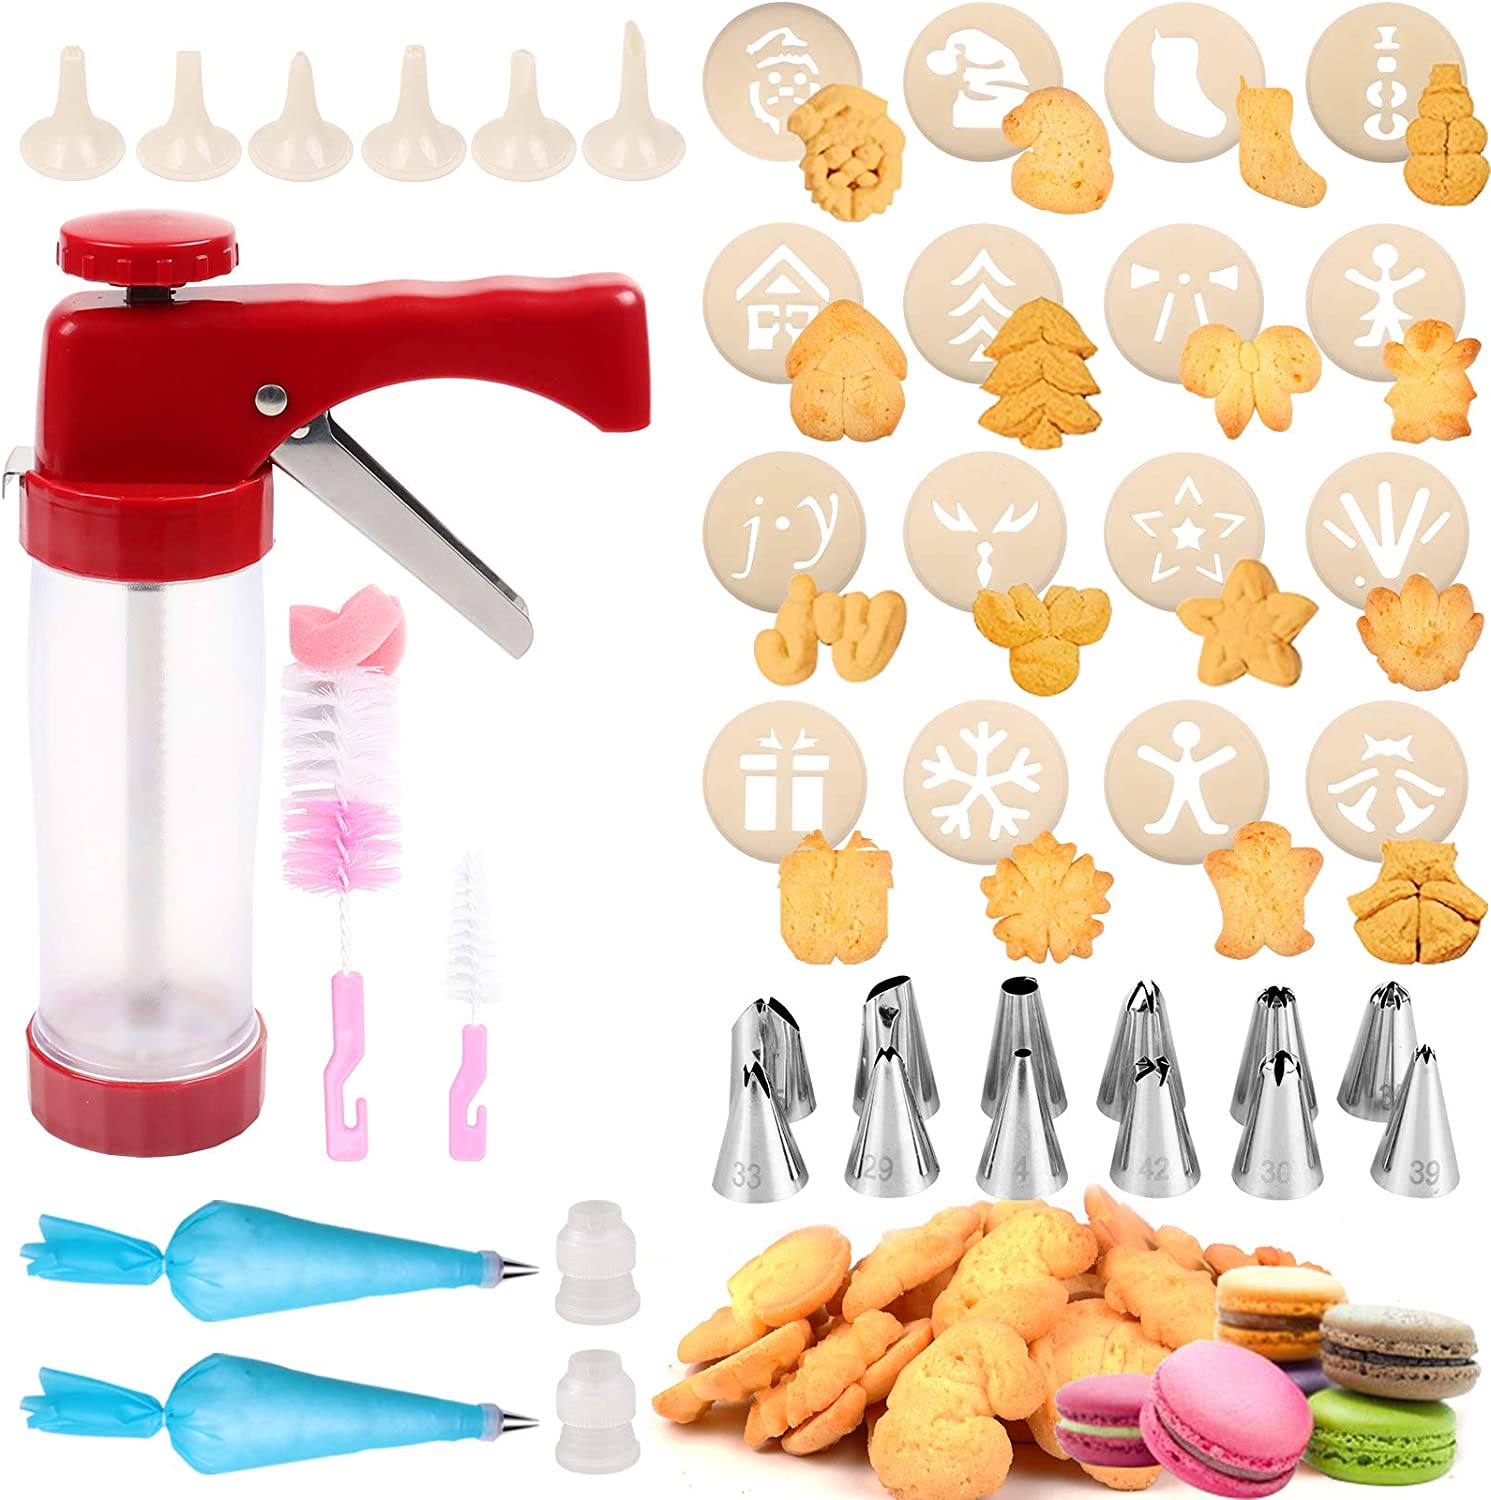 Cookie Press 41 PCS Cookie Press Gun with 16 Christmas Spritz Mold Decorative Stencil Discs, Icing Tips, EVA bags for Cookies, Biscuit,Macaroon & Churro Maker-Good Baking Kits for Christmas